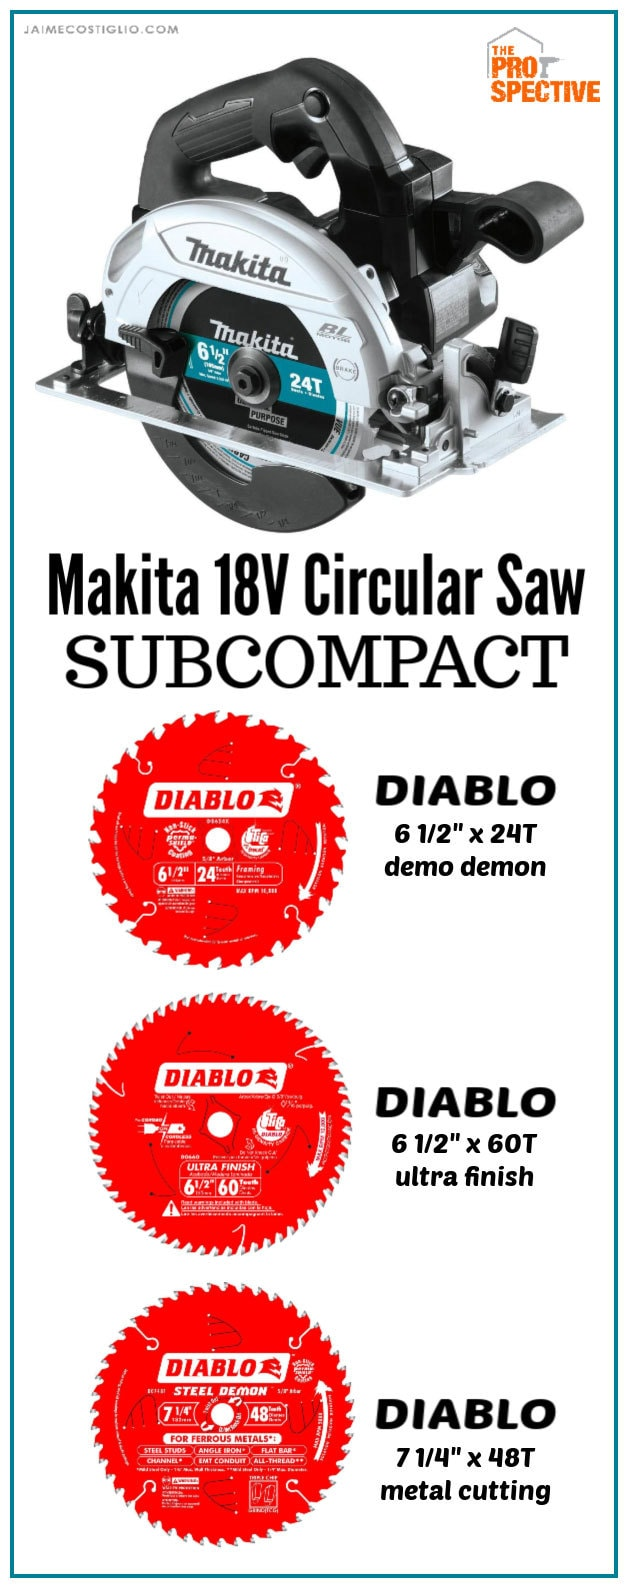 makita subcompact circular saw and diablo blades